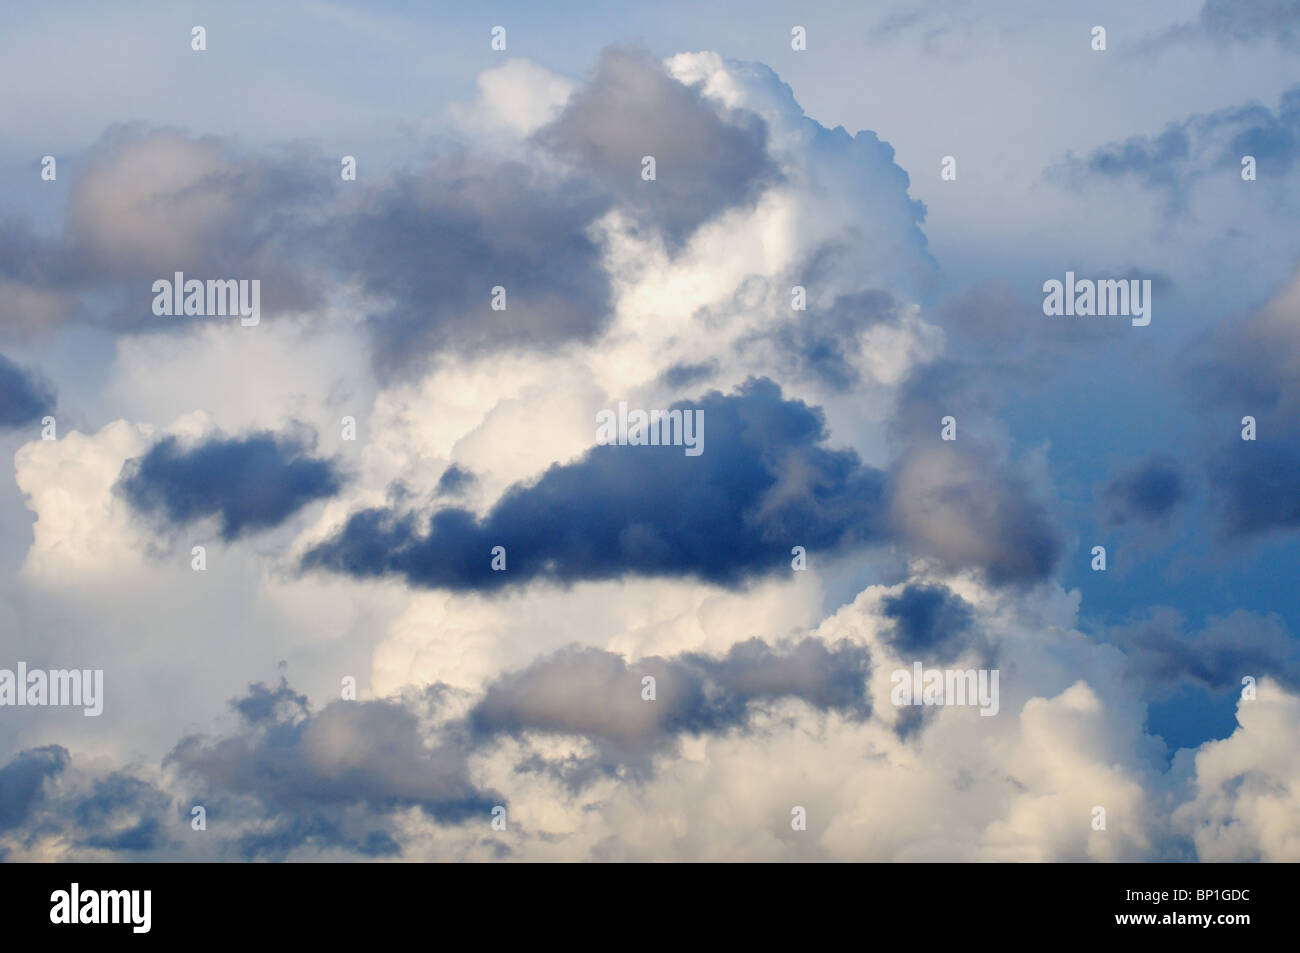 Storm clouds forming against dark background - Stock Image